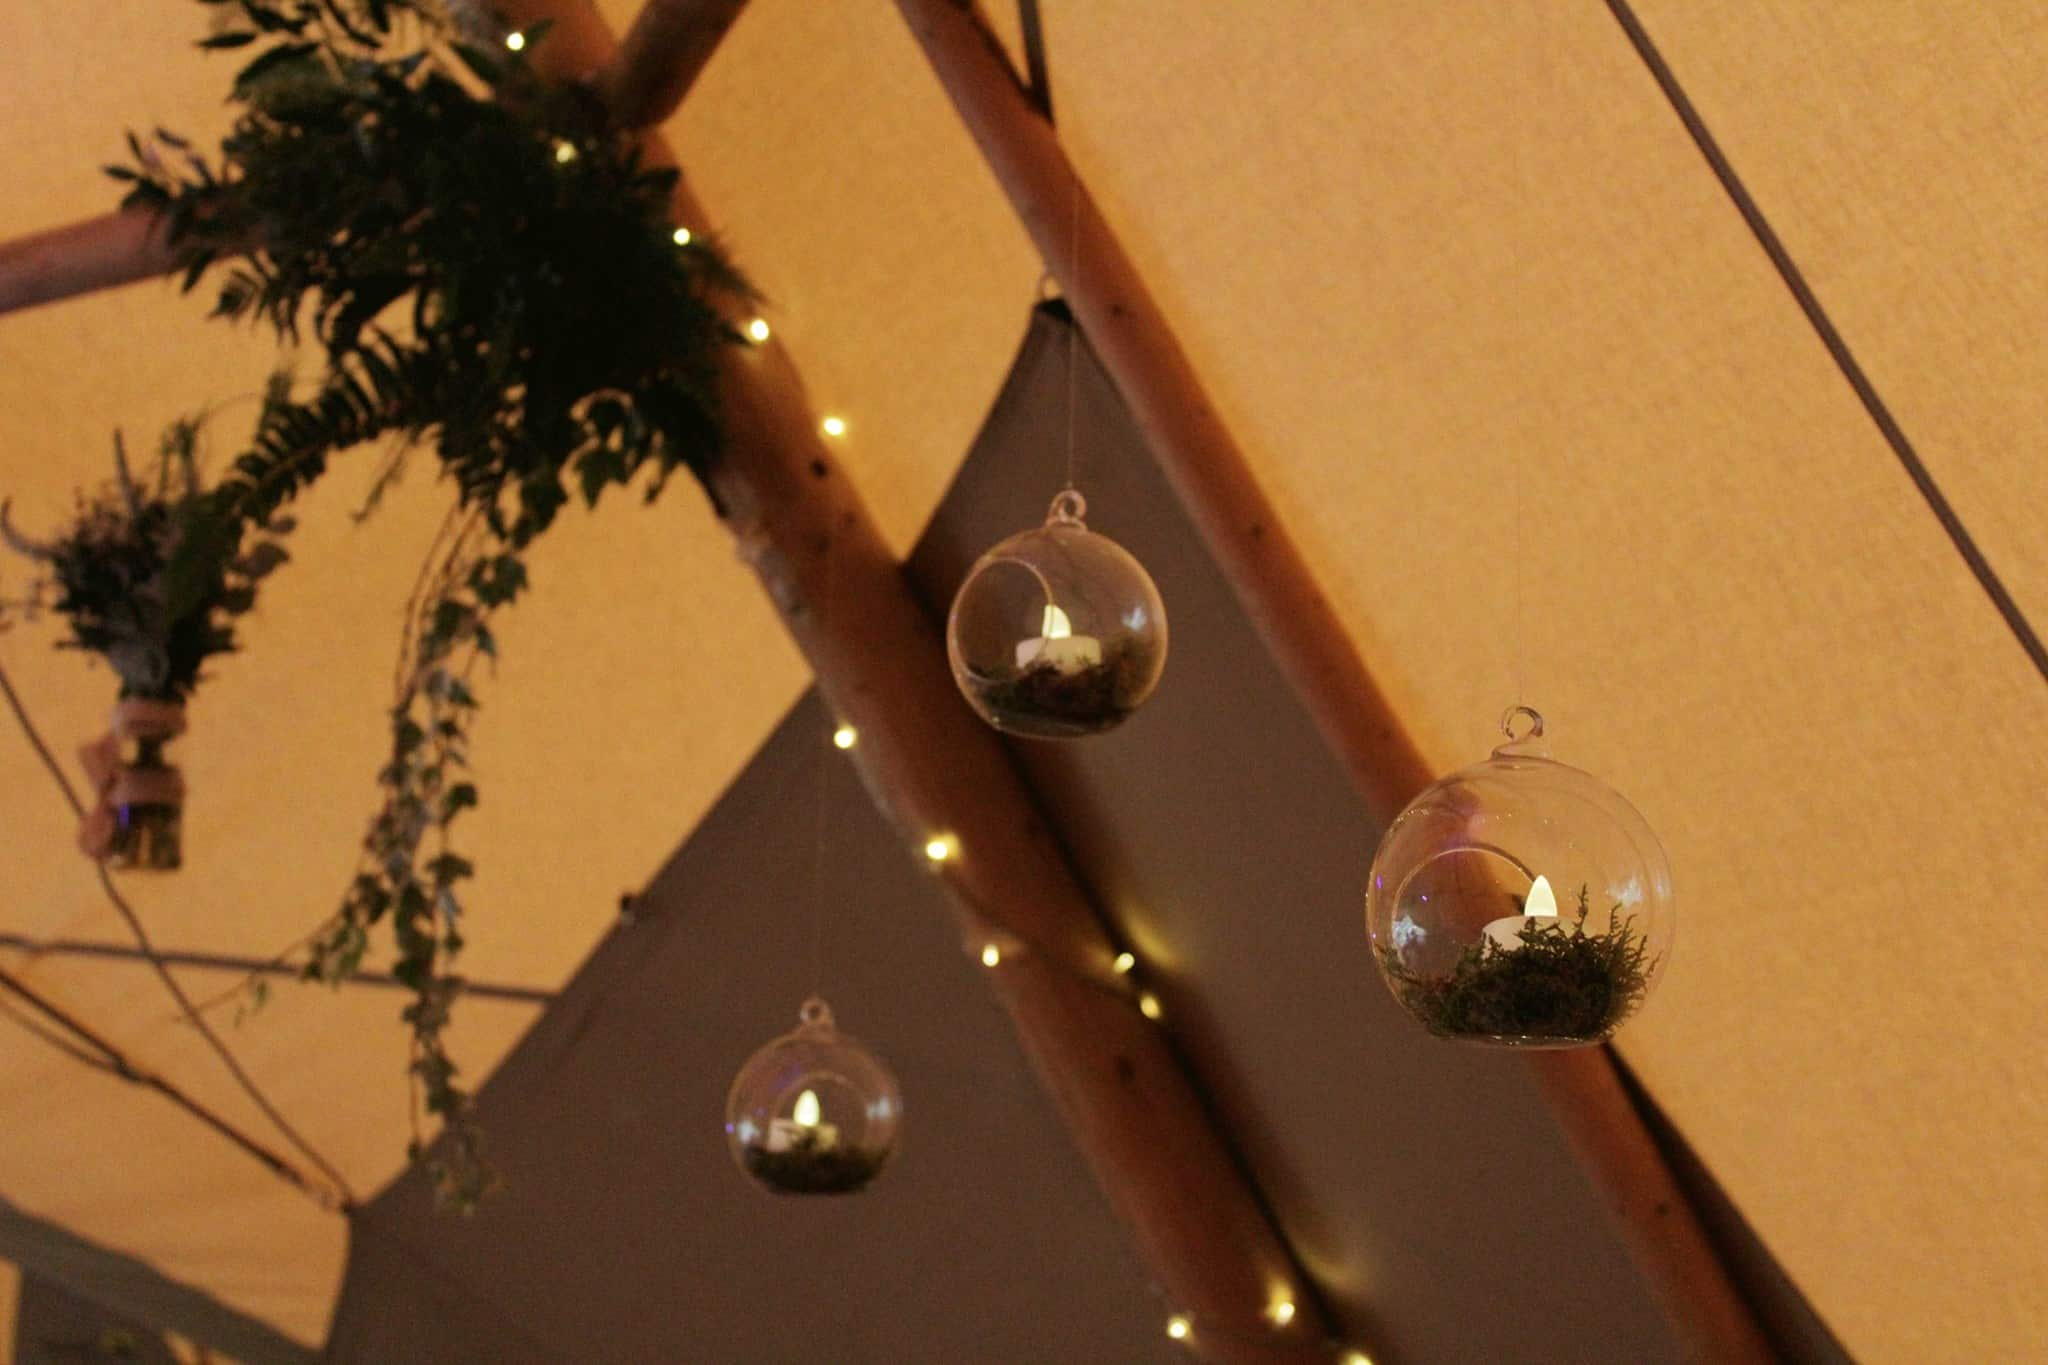 Tipi Hanging decorations - Woodland themed styling by The Rustic Wedding Company